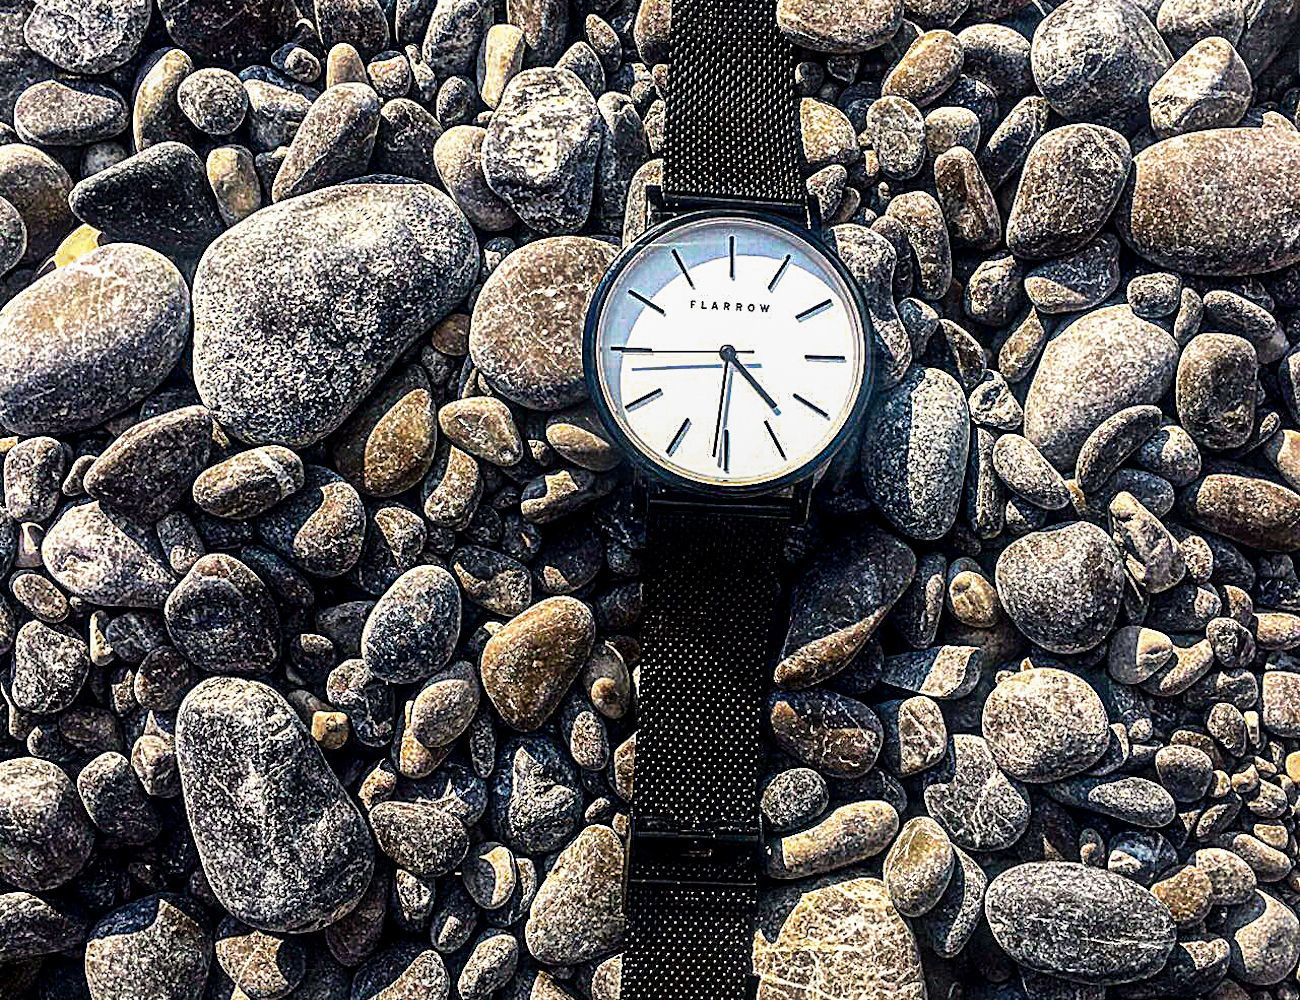 FLARROW – Affordable Contemporary Watches